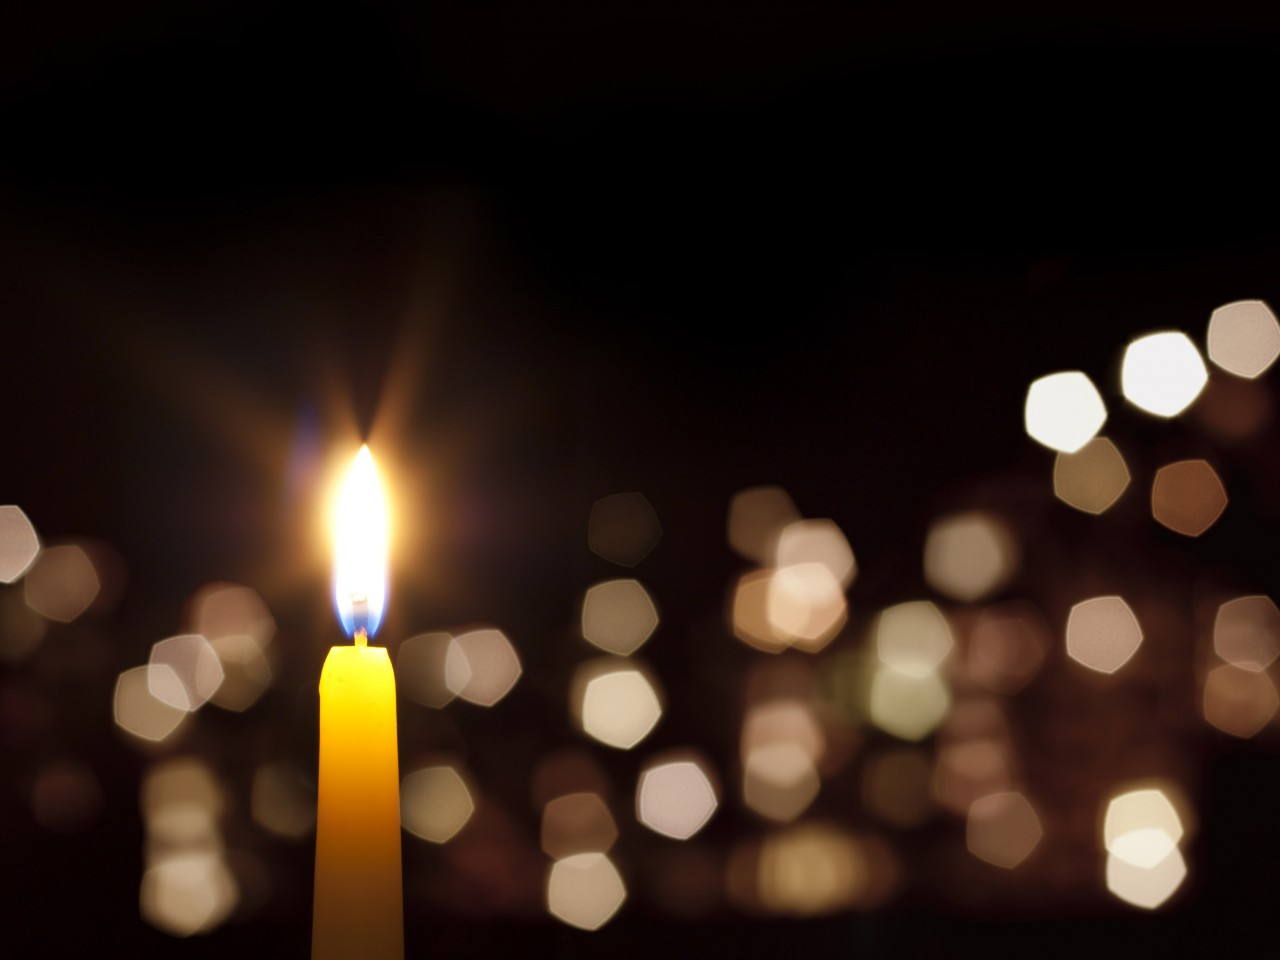 Bethany, Council Road offers art talents to candlelight service